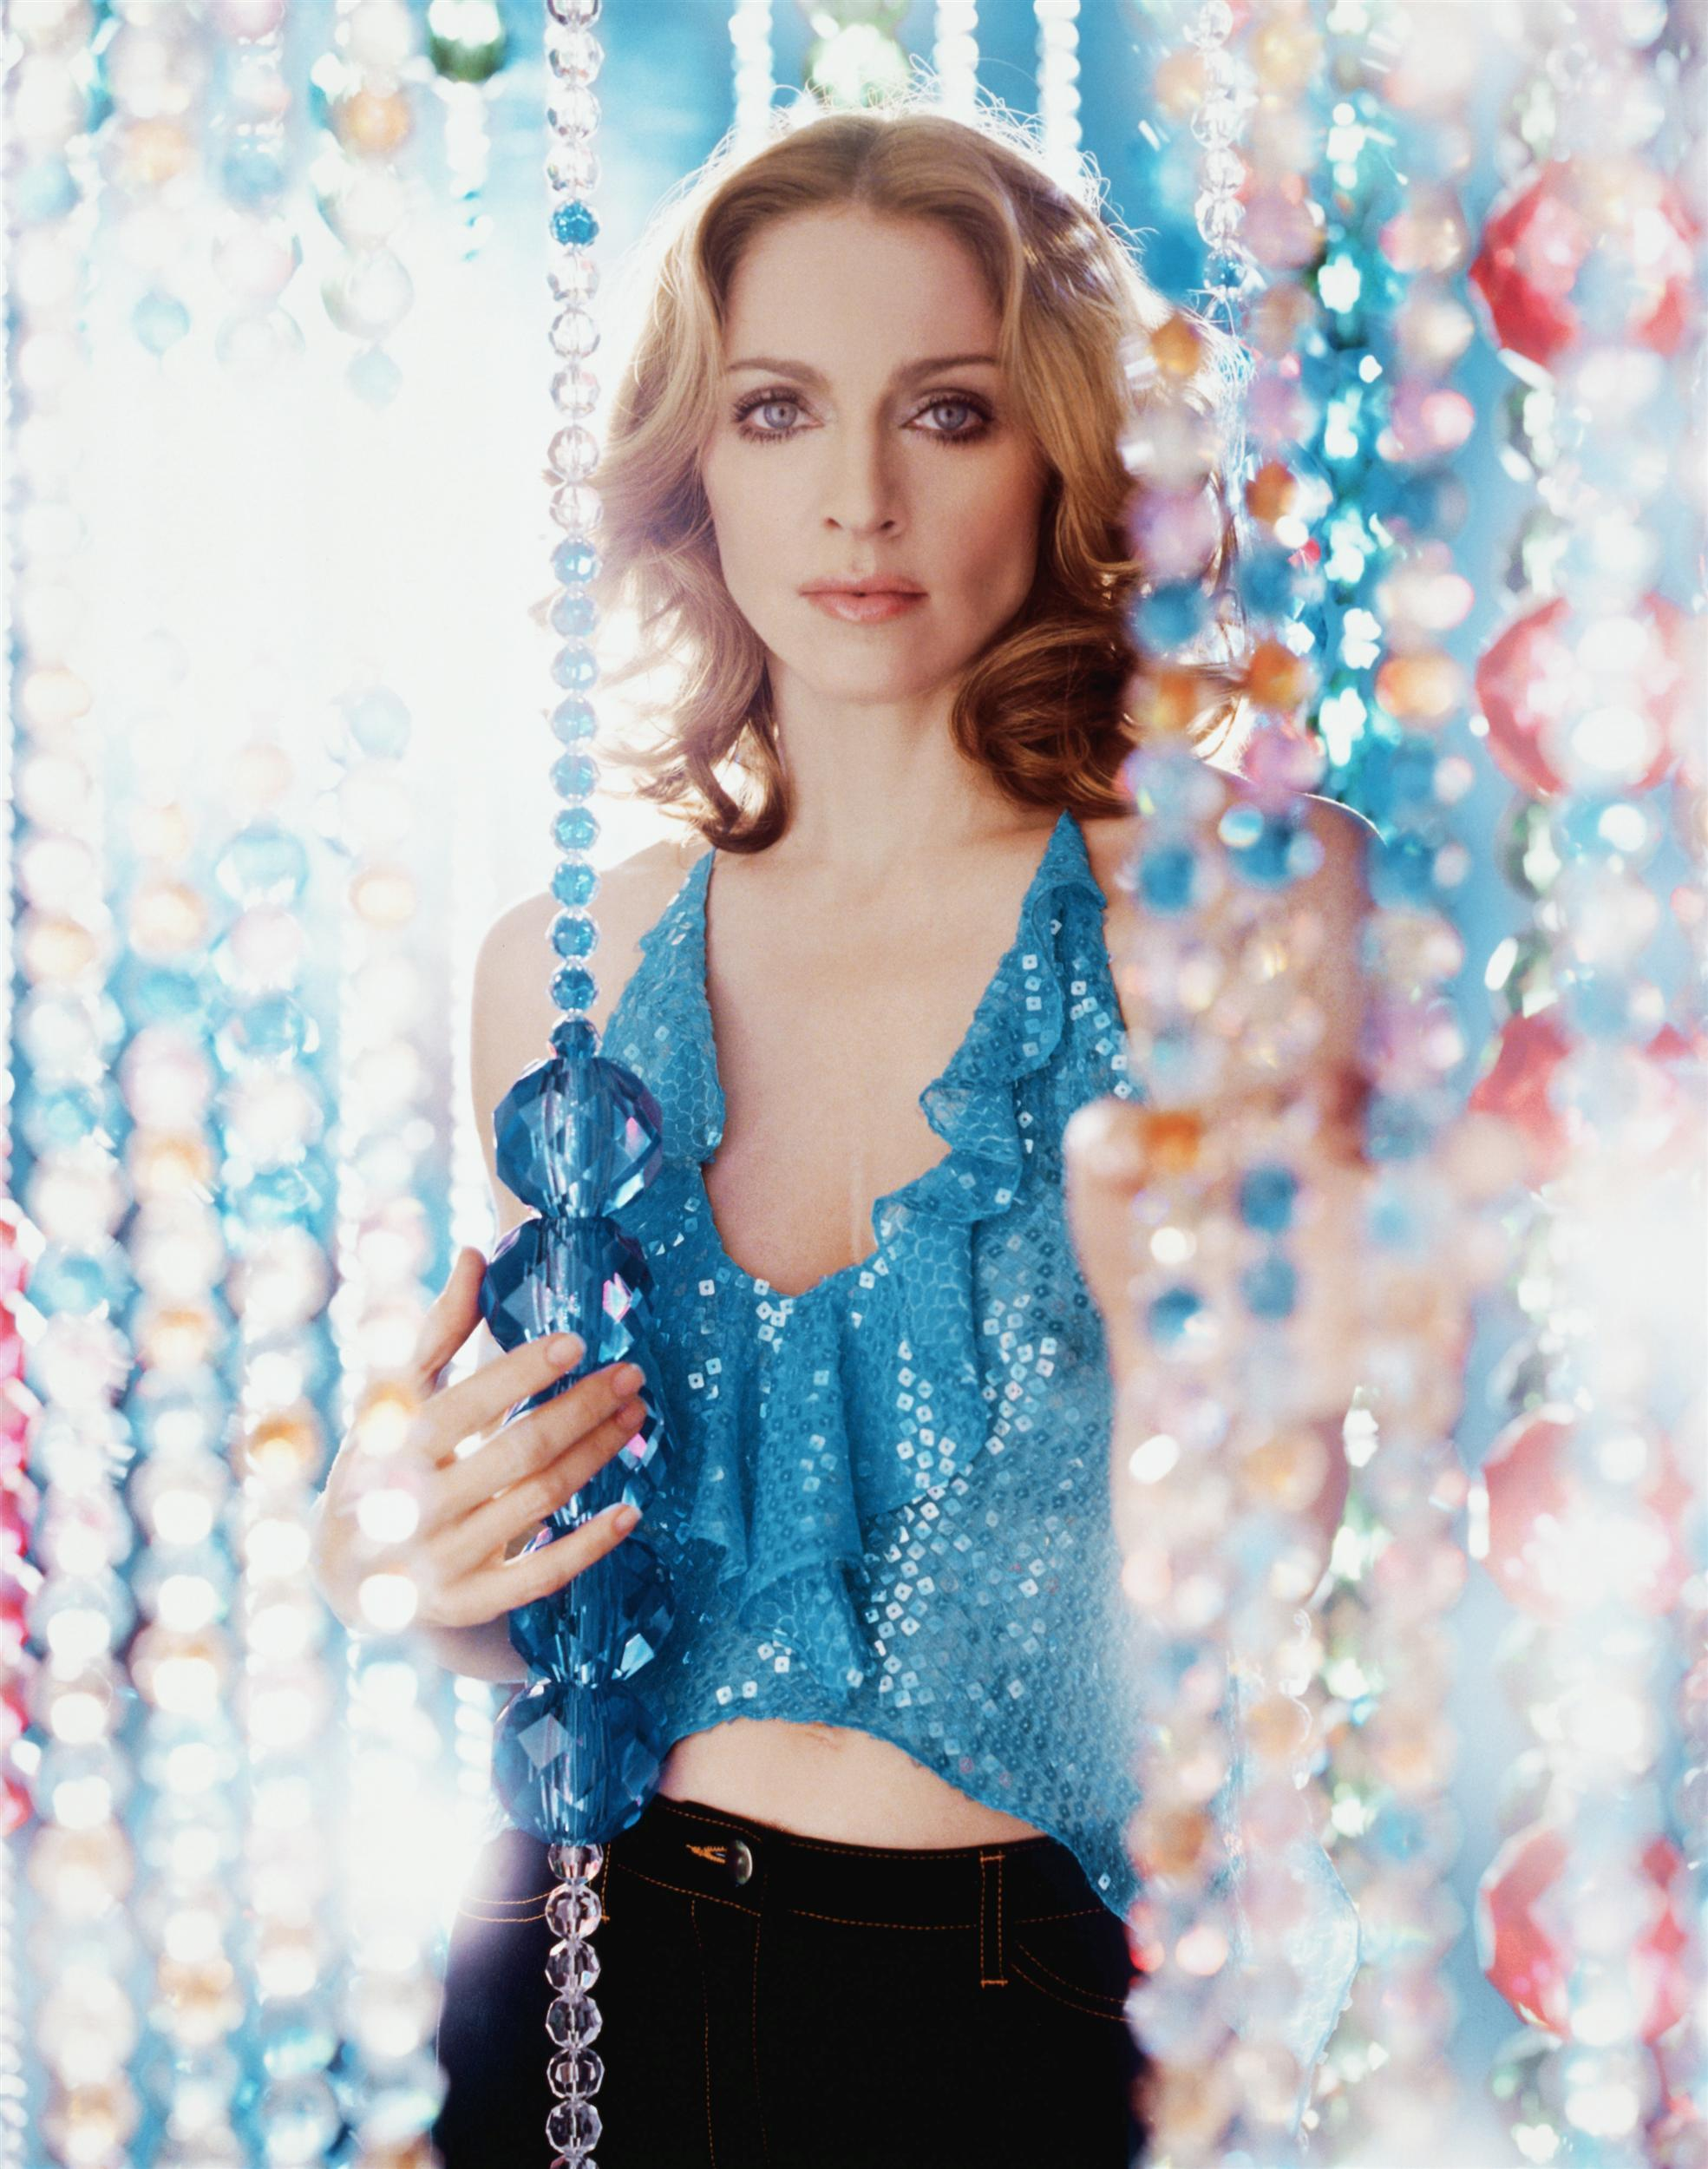 Madonna images madonna hd wallpaper and background photos 1419268 - Madonna hd images ...